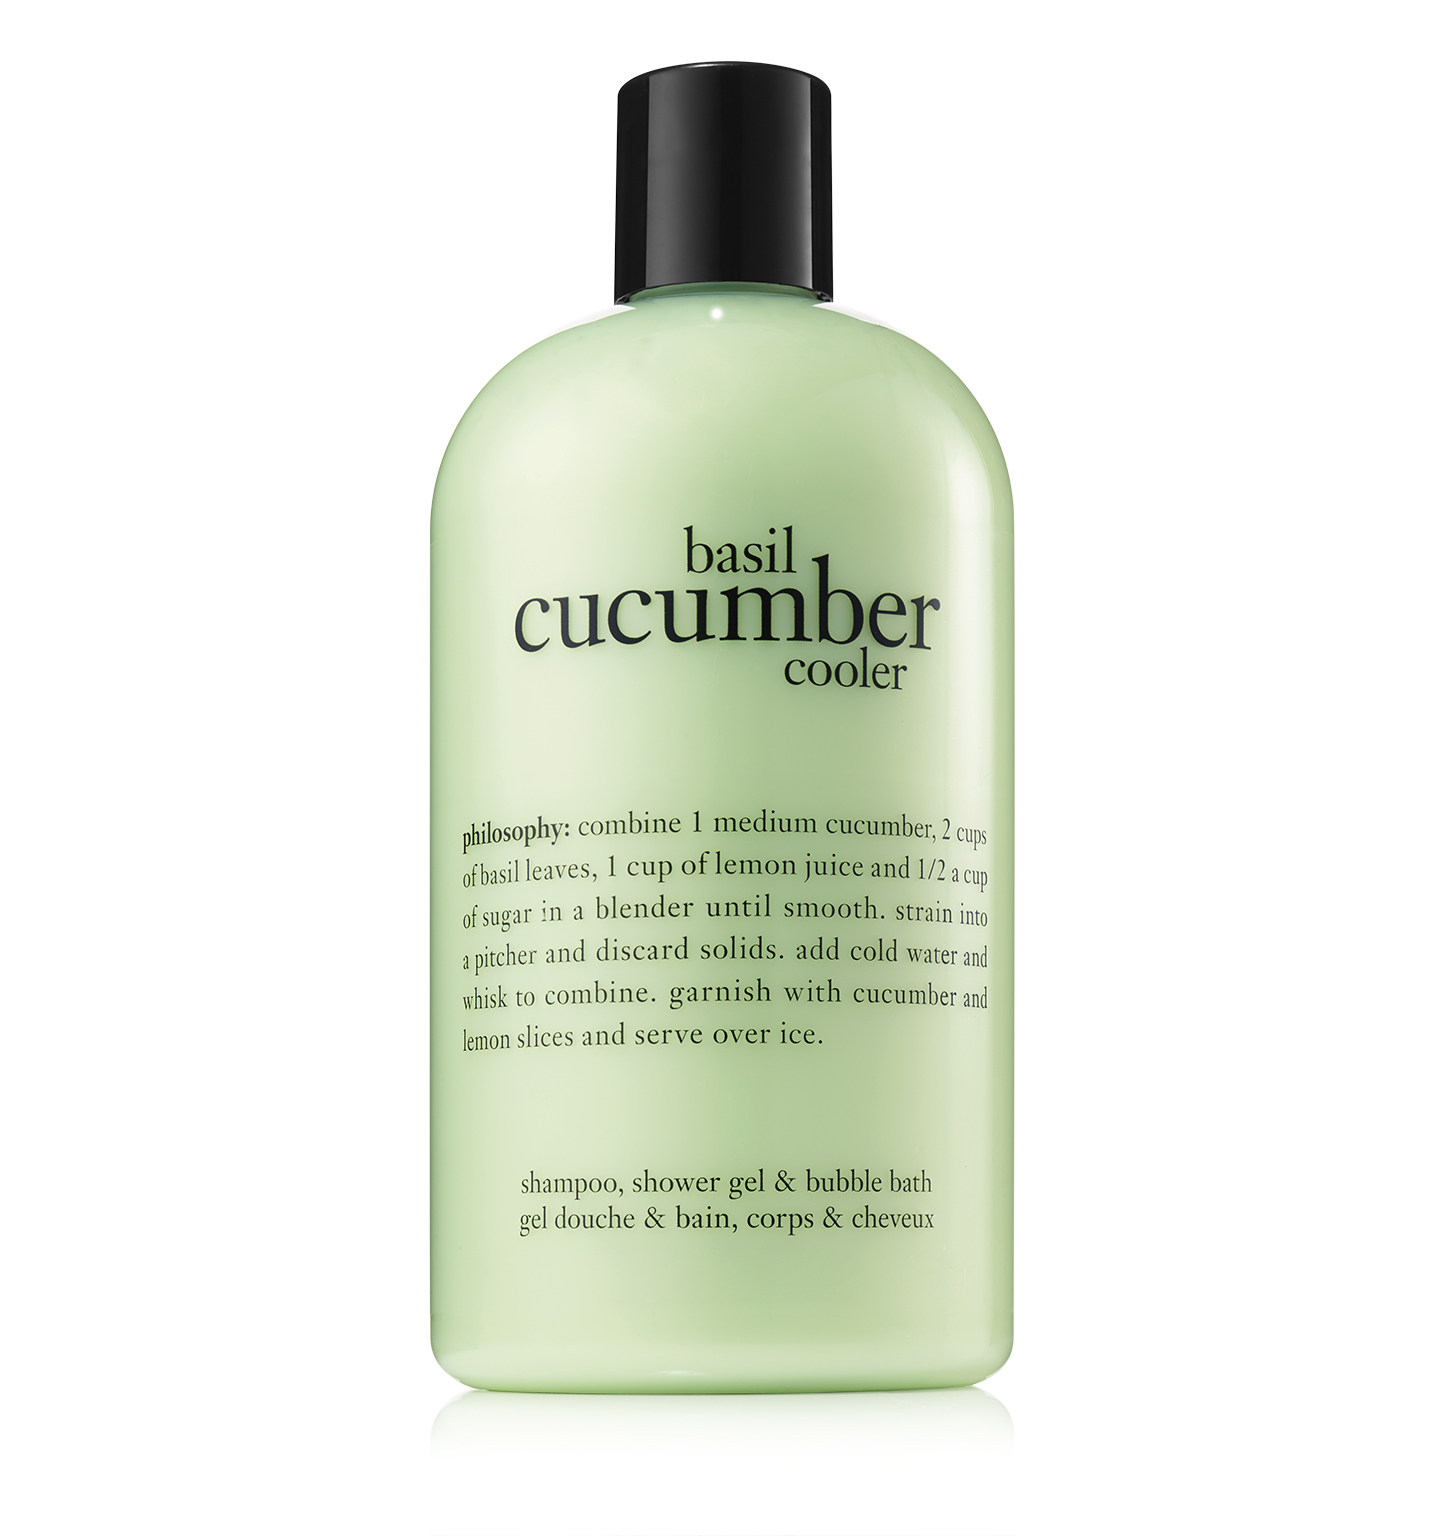 philosophy, basil cucumber cooler shower gel